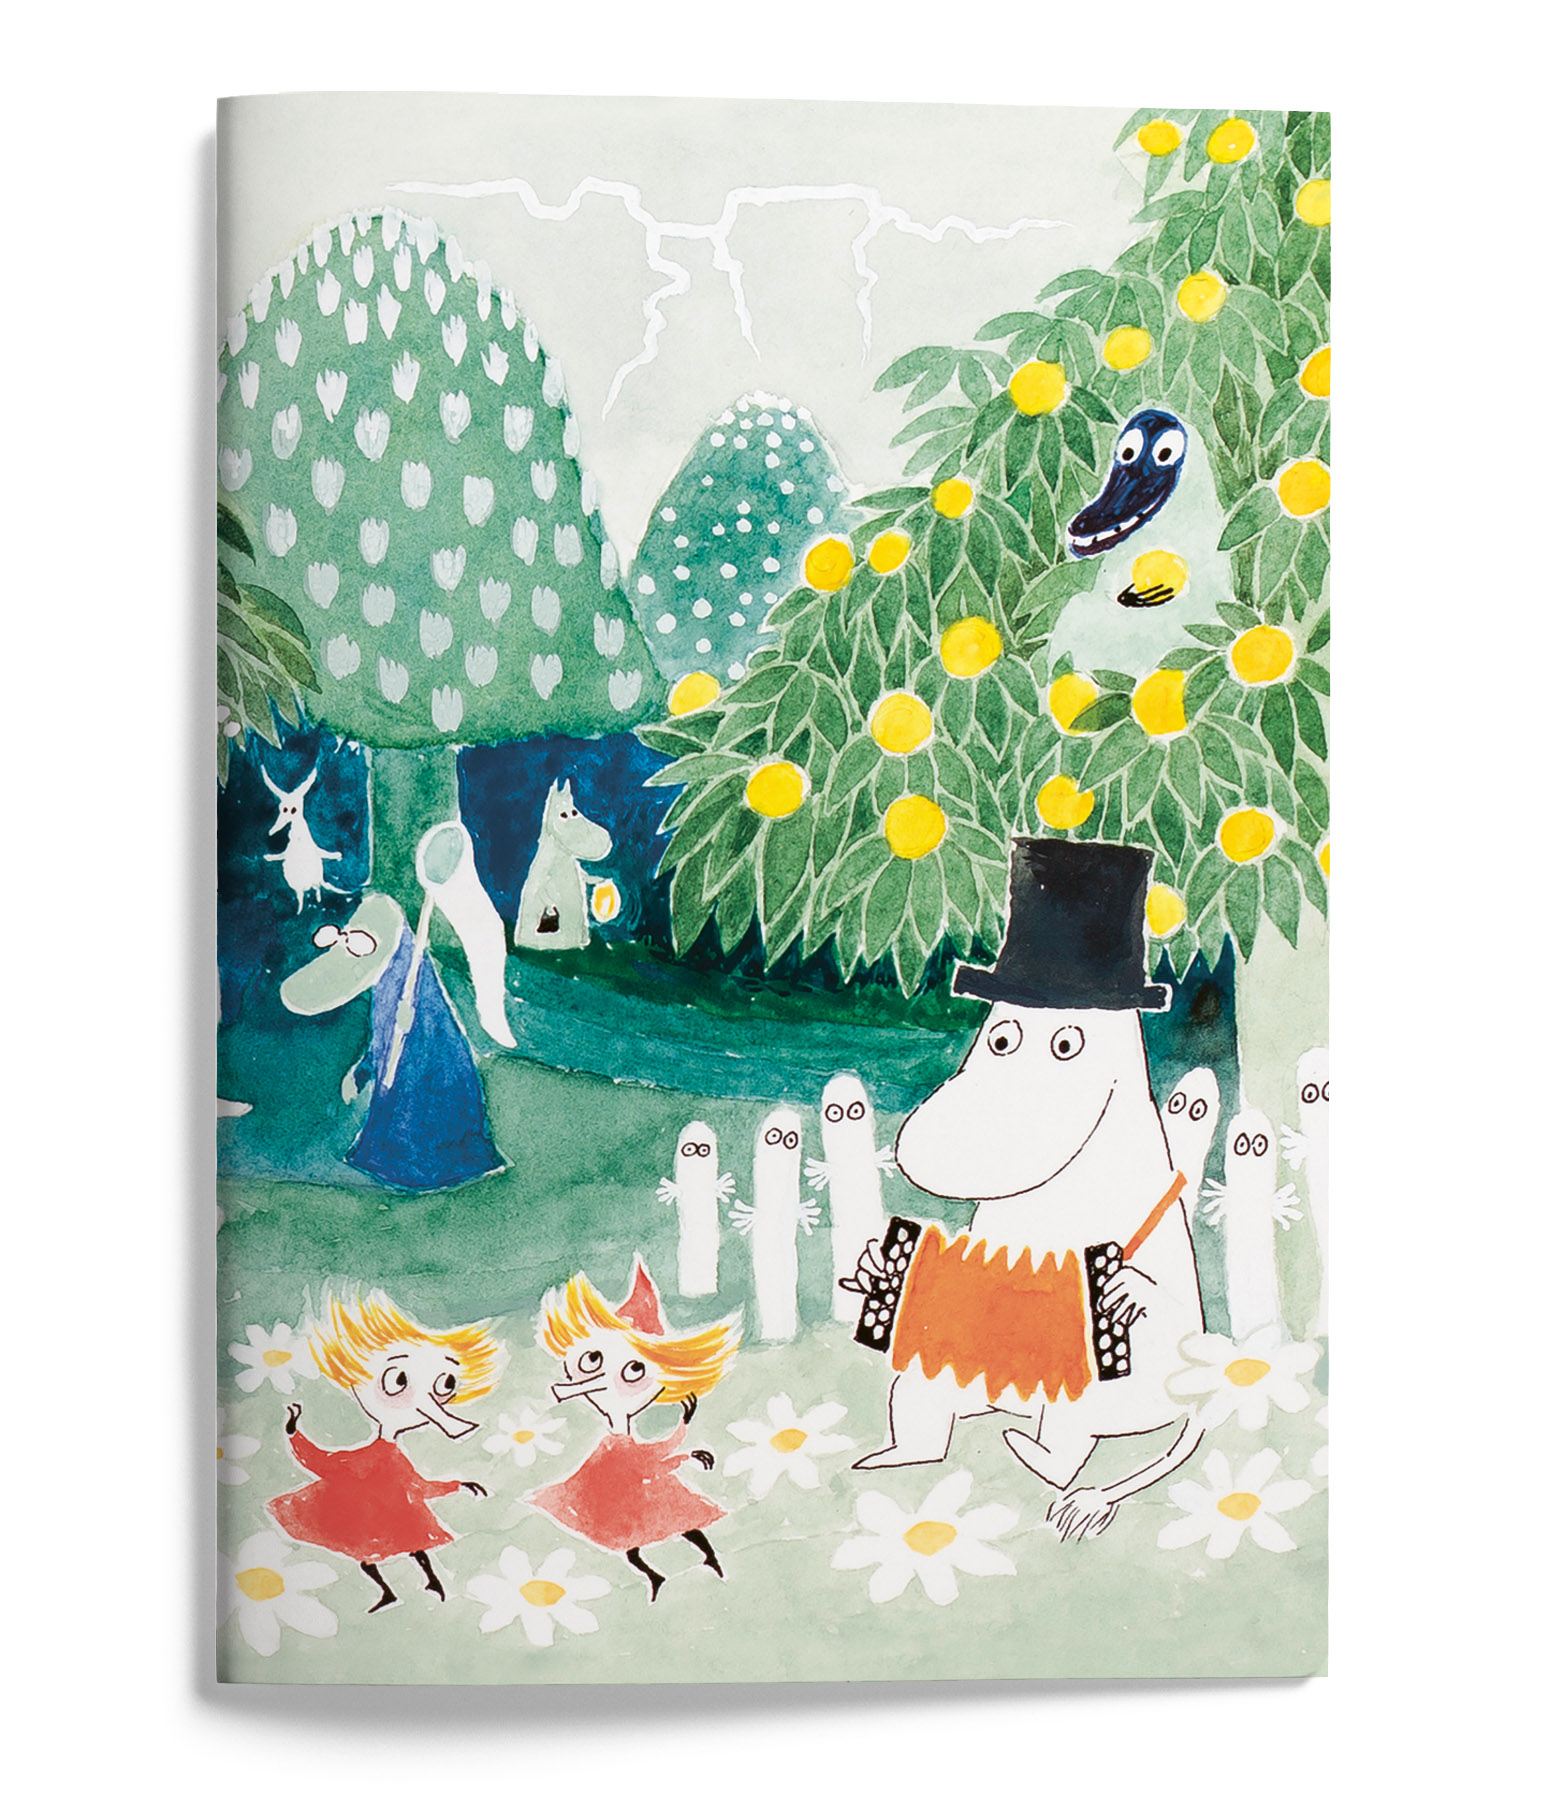 Putinki Softcover Notebook A5 Finn Family Moomintroll